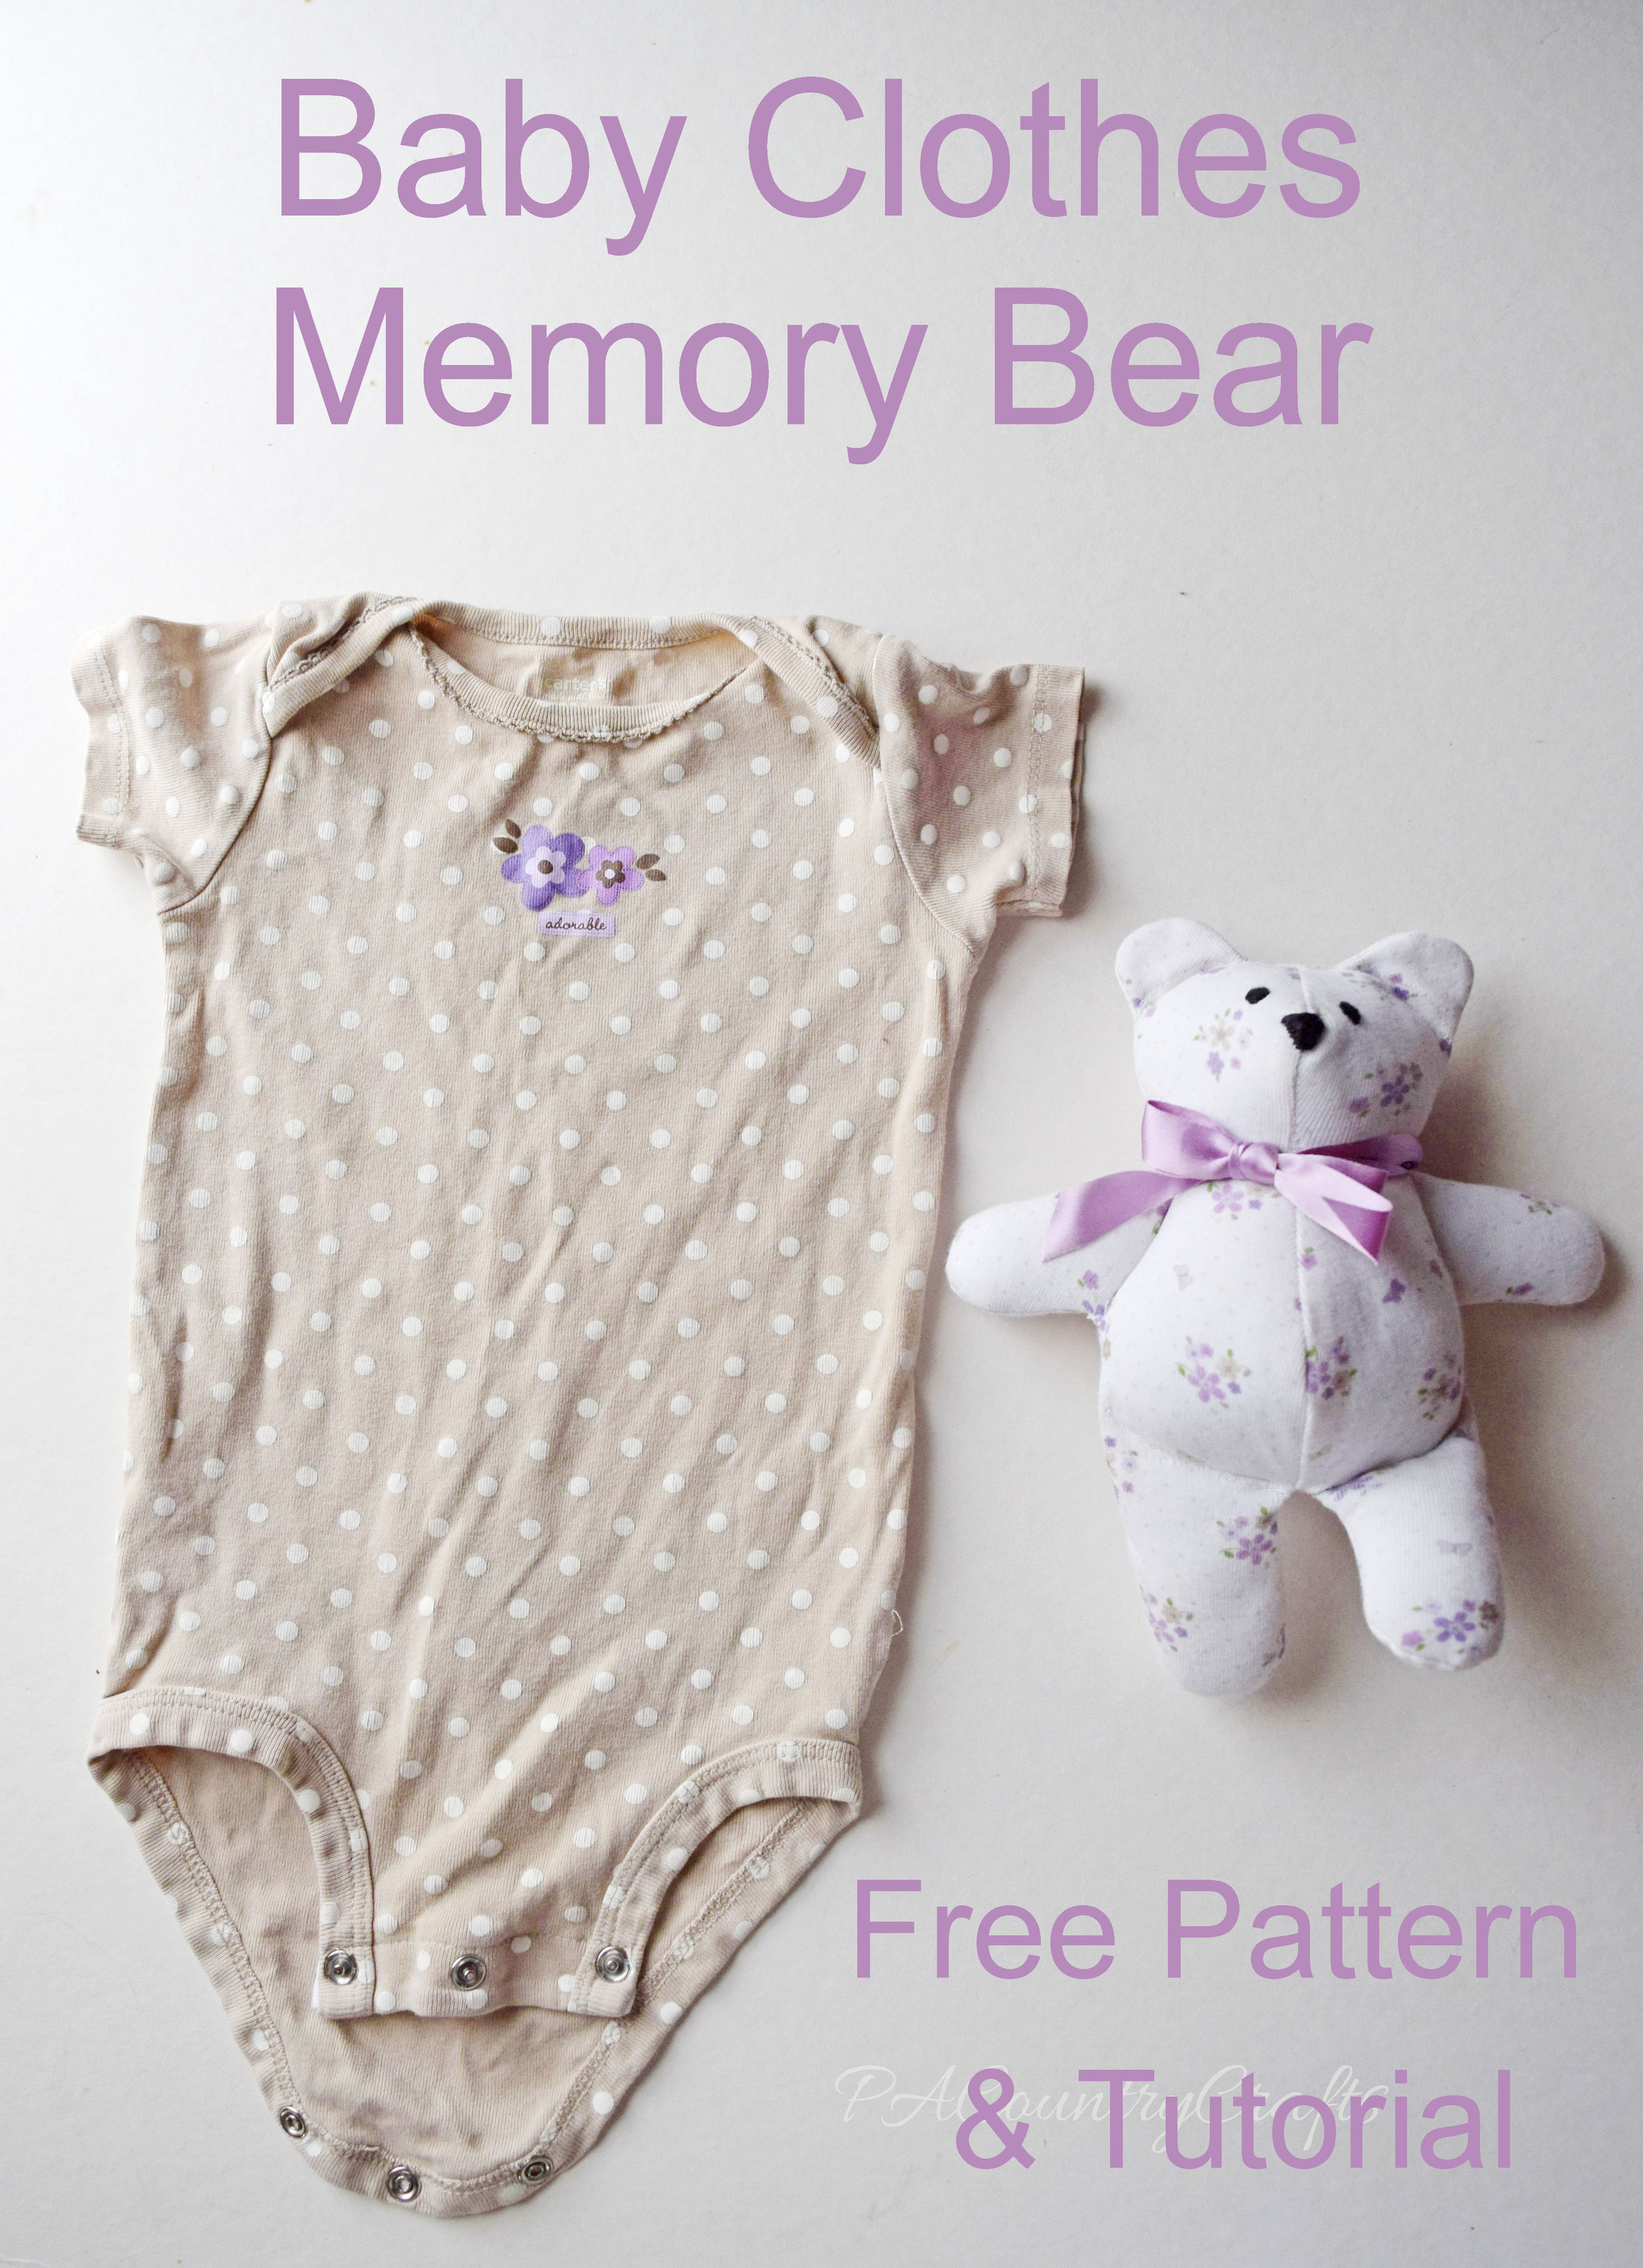 Turn old baby clothes into a memory bear.